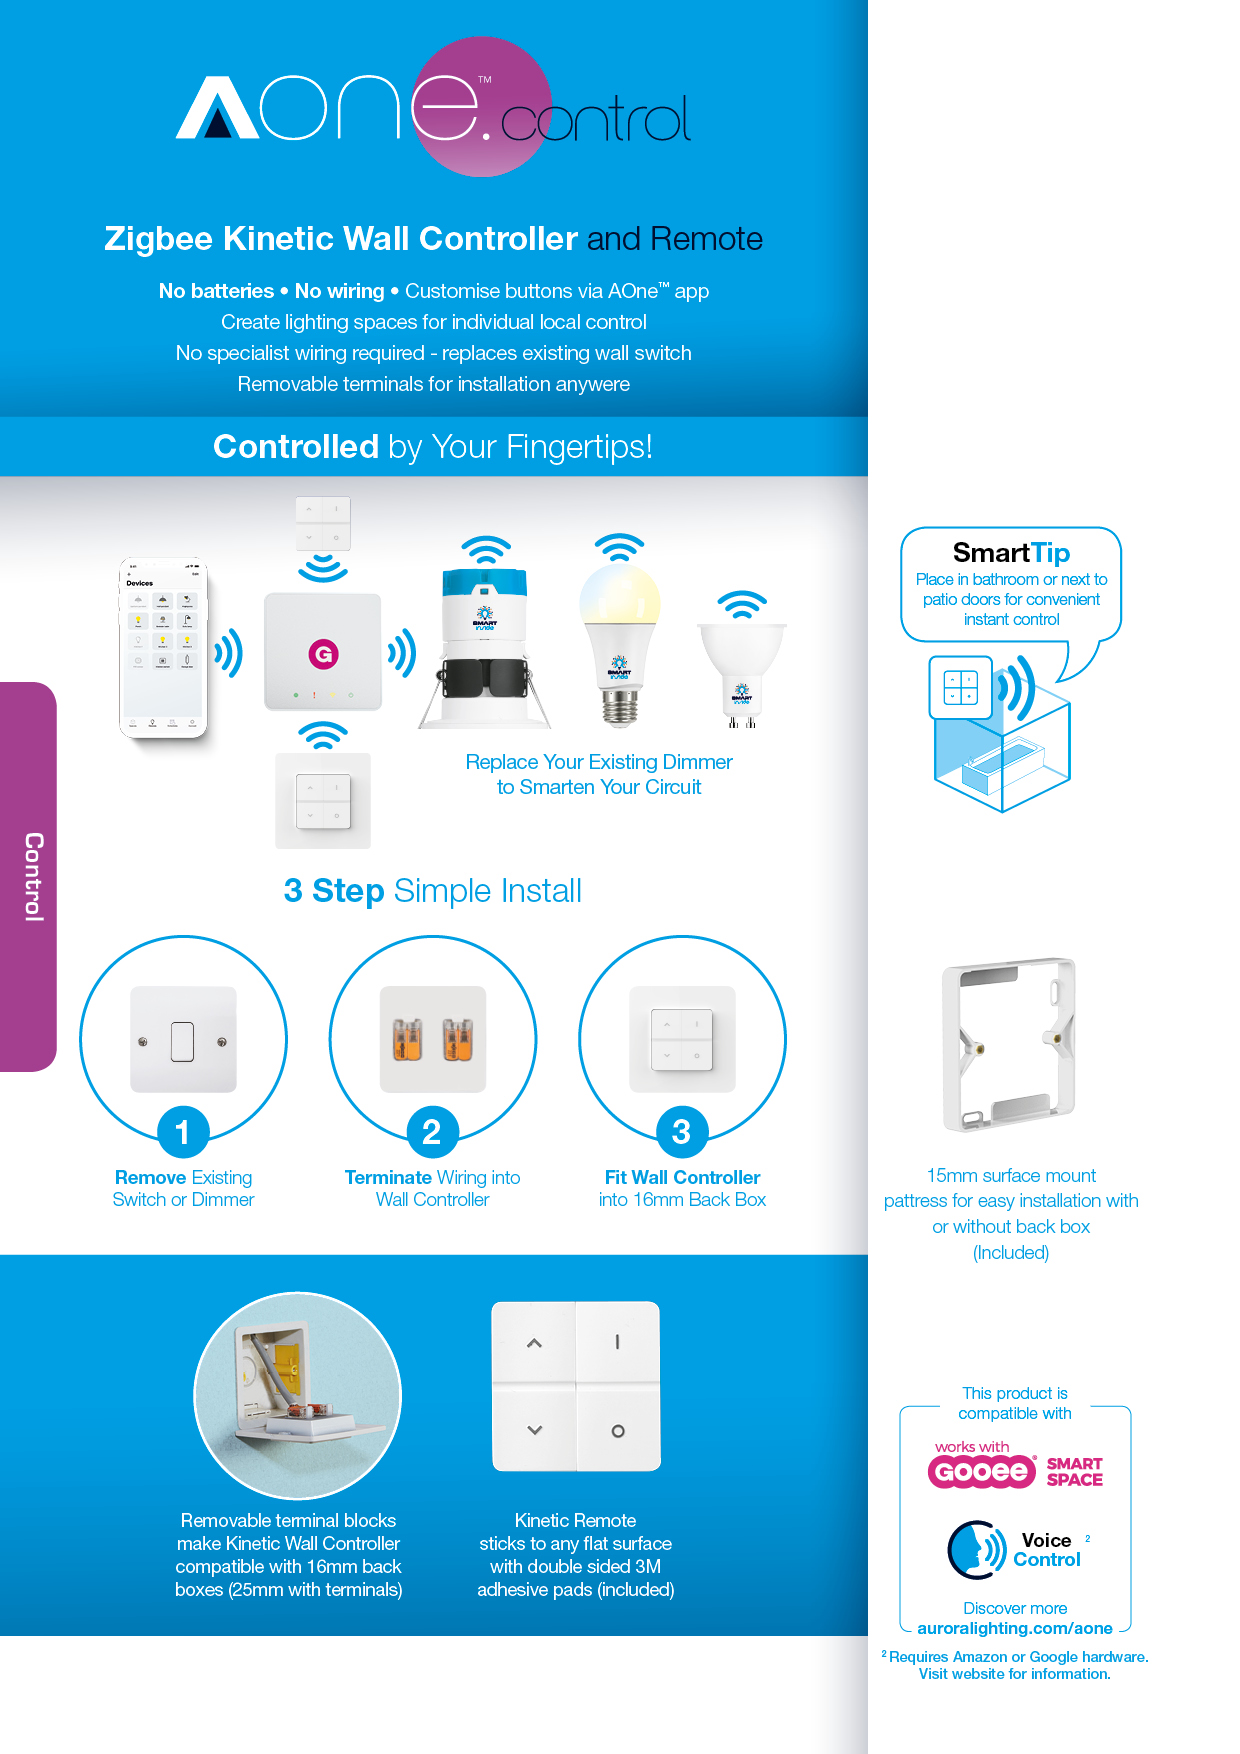 Auroras Aonetm Smart Lighting Sensing And Control Platform Rewiring Light Switch Double Along With Recessed Ceiling Symbol View Product Page